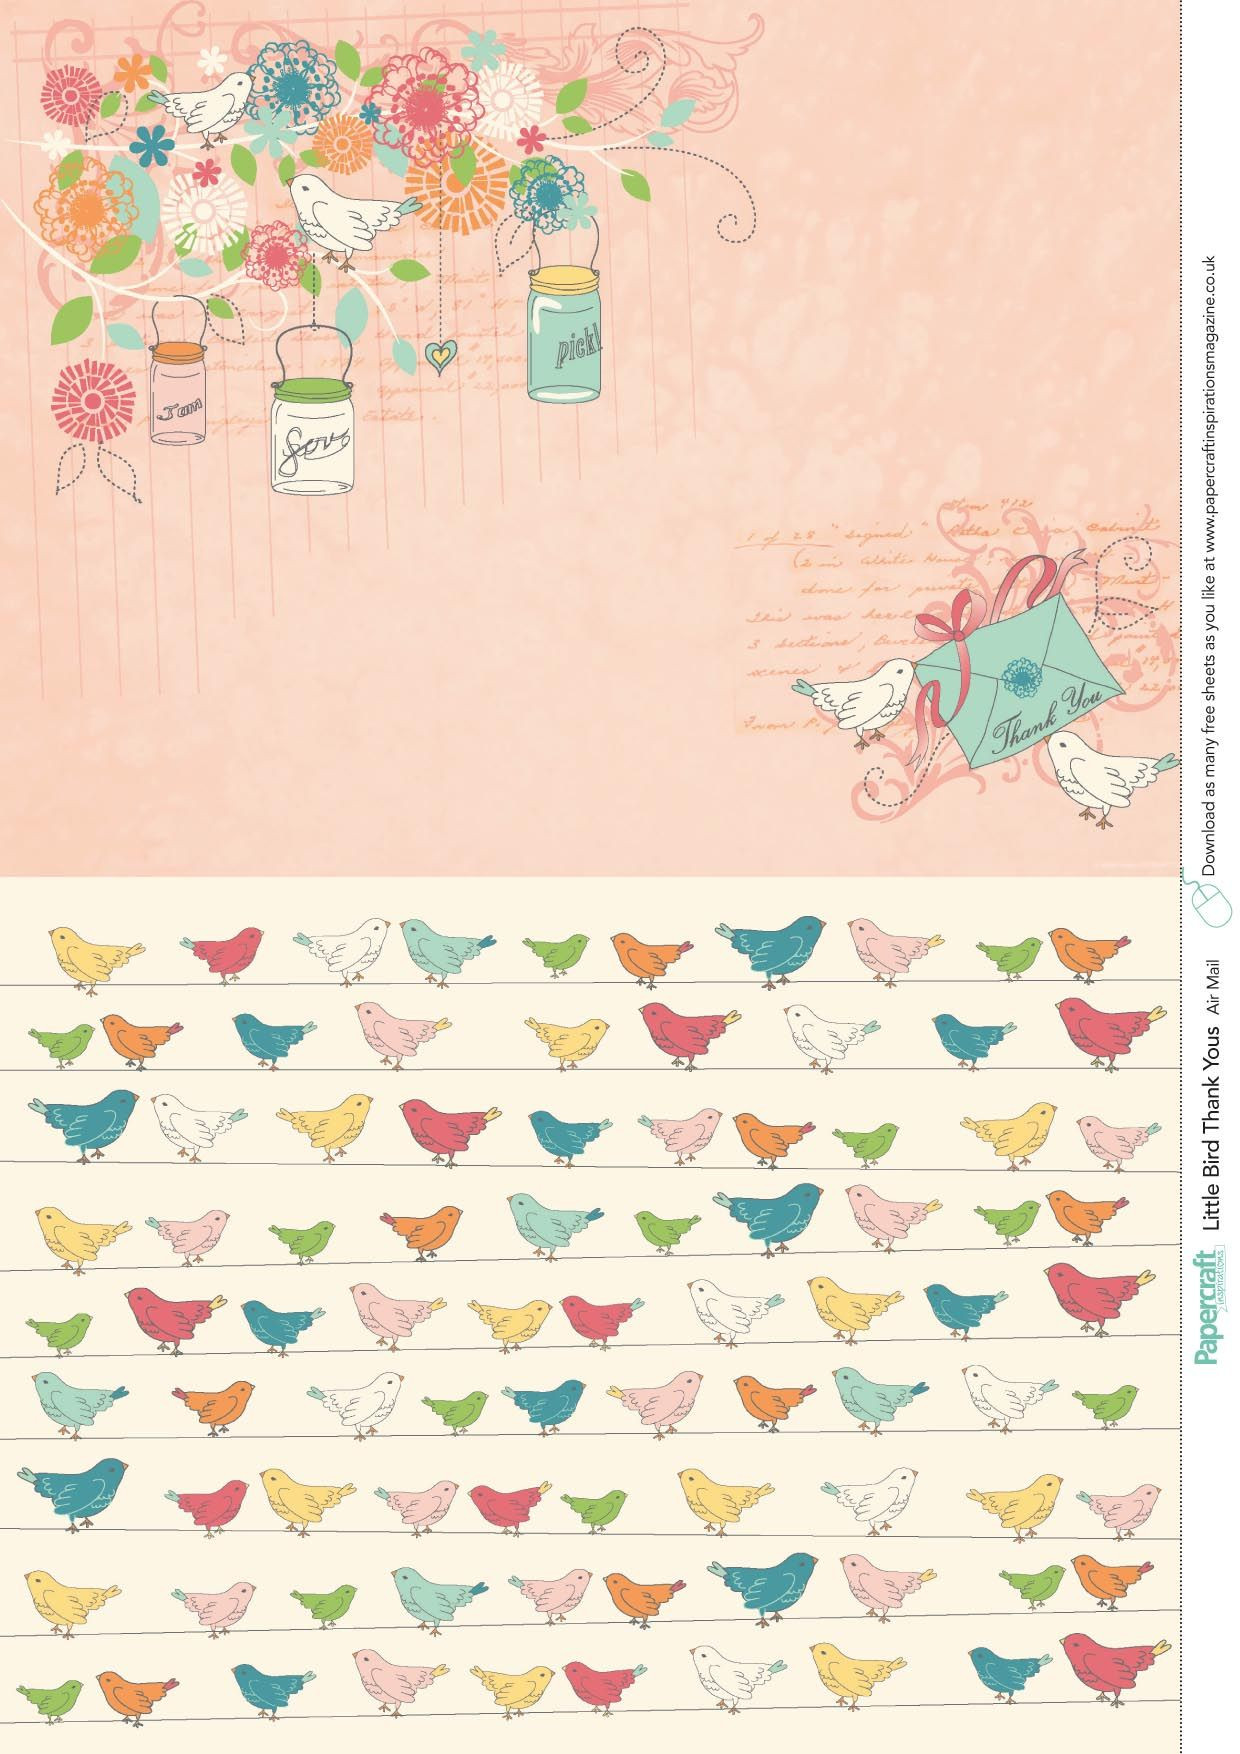 Pin108eepapers1g 1 2401 754 pixels pinterest cute and printable paper designs jeuxipadfo Choice Image